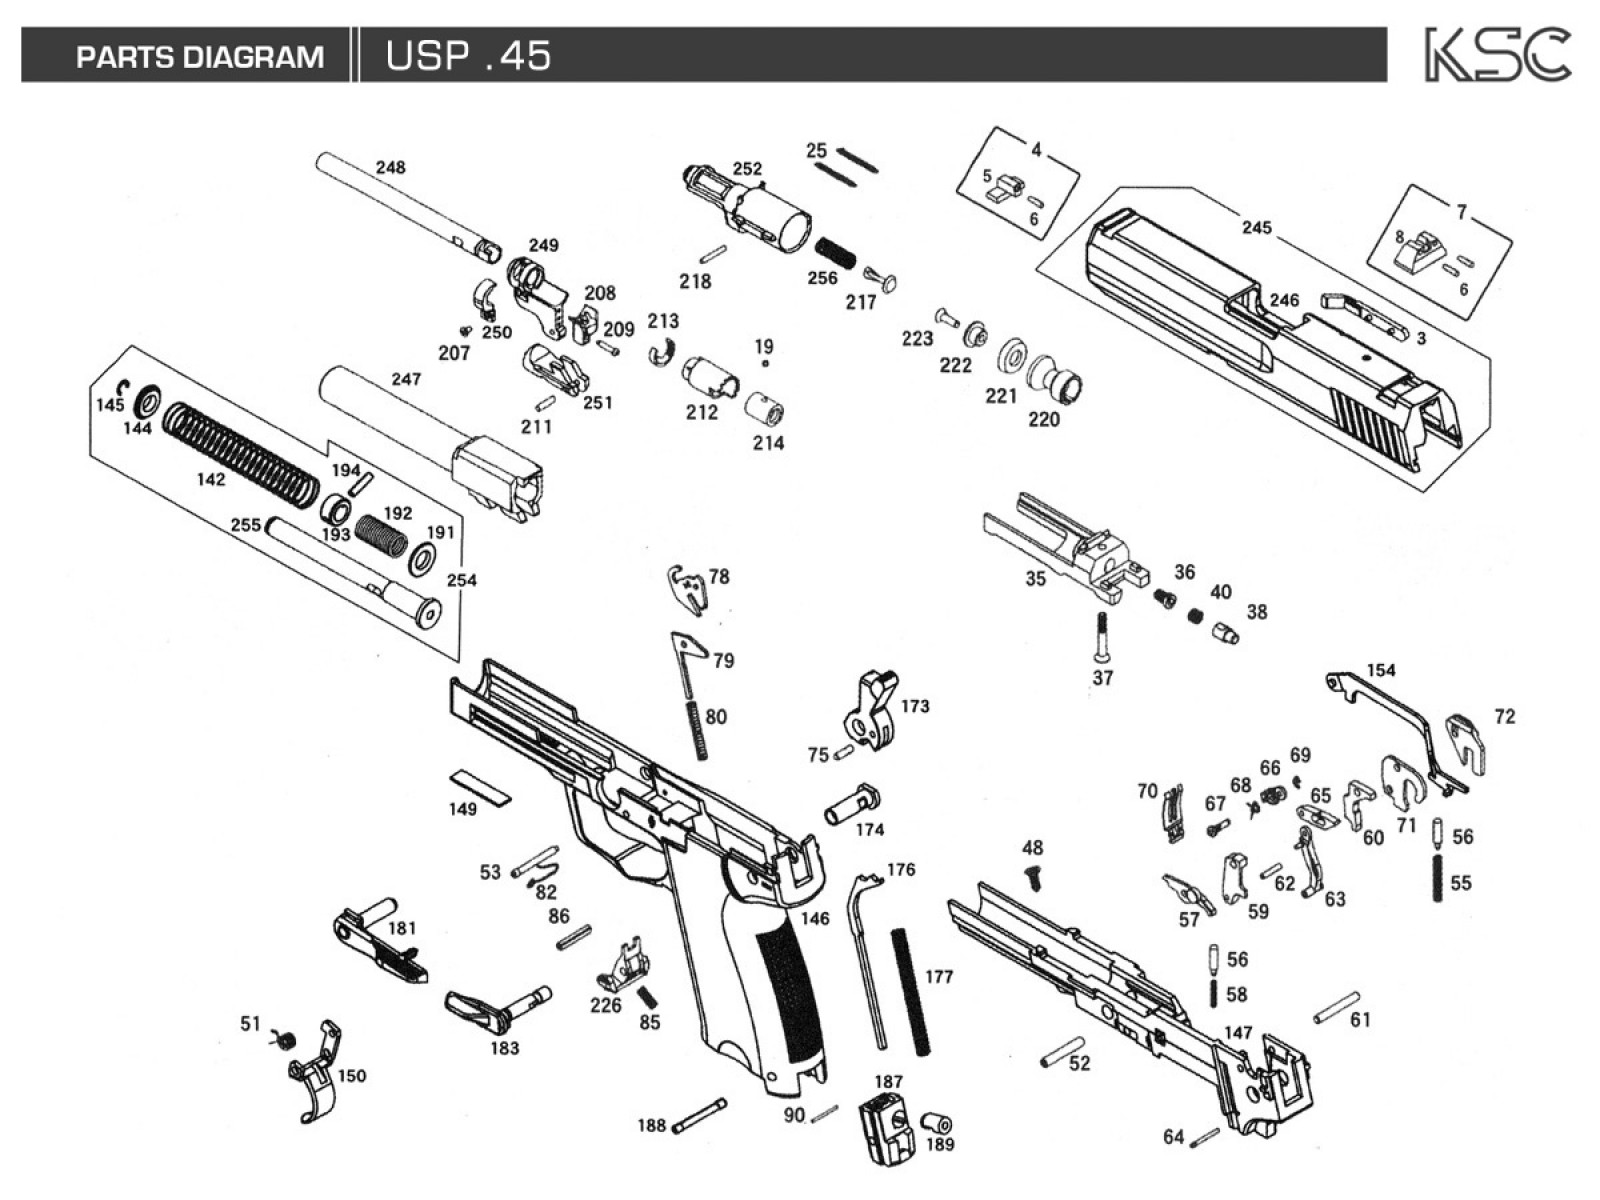 M1911a1 Parts Diagram Product Wiring Diagrams 1911 Pistol Also With Colt Exploded Ksc Products Drawing